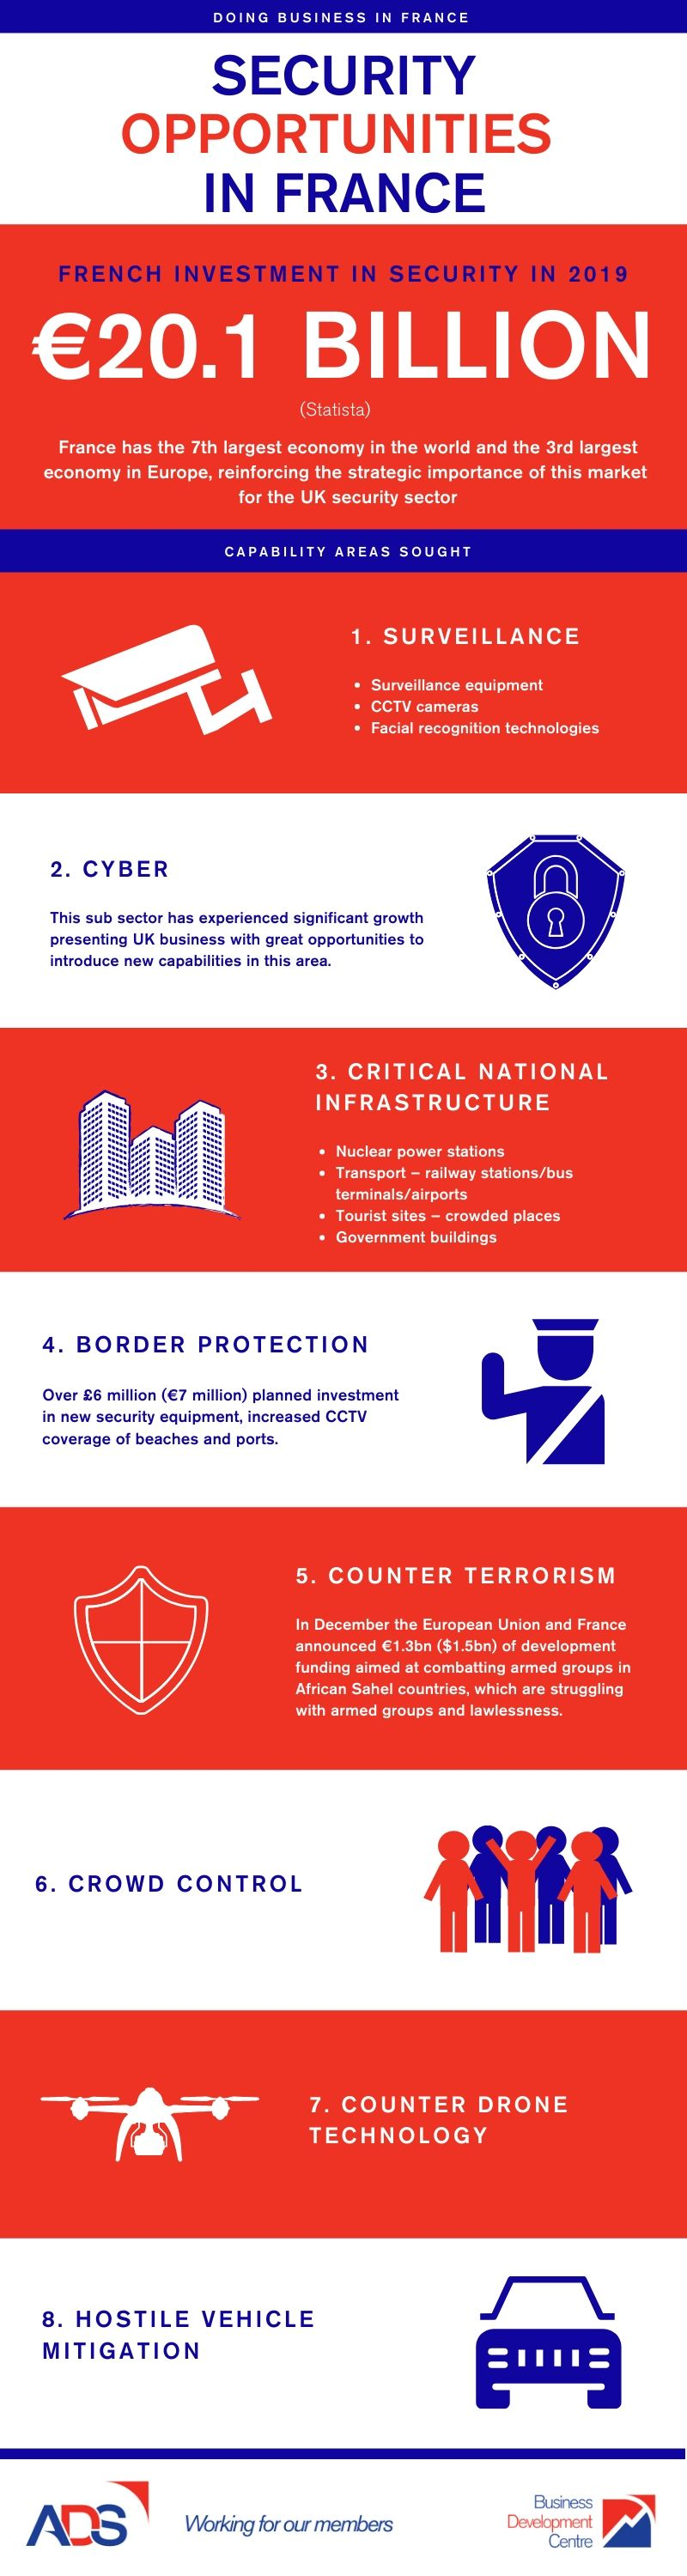 French Security Opportunities - Oct 2019 Infographic